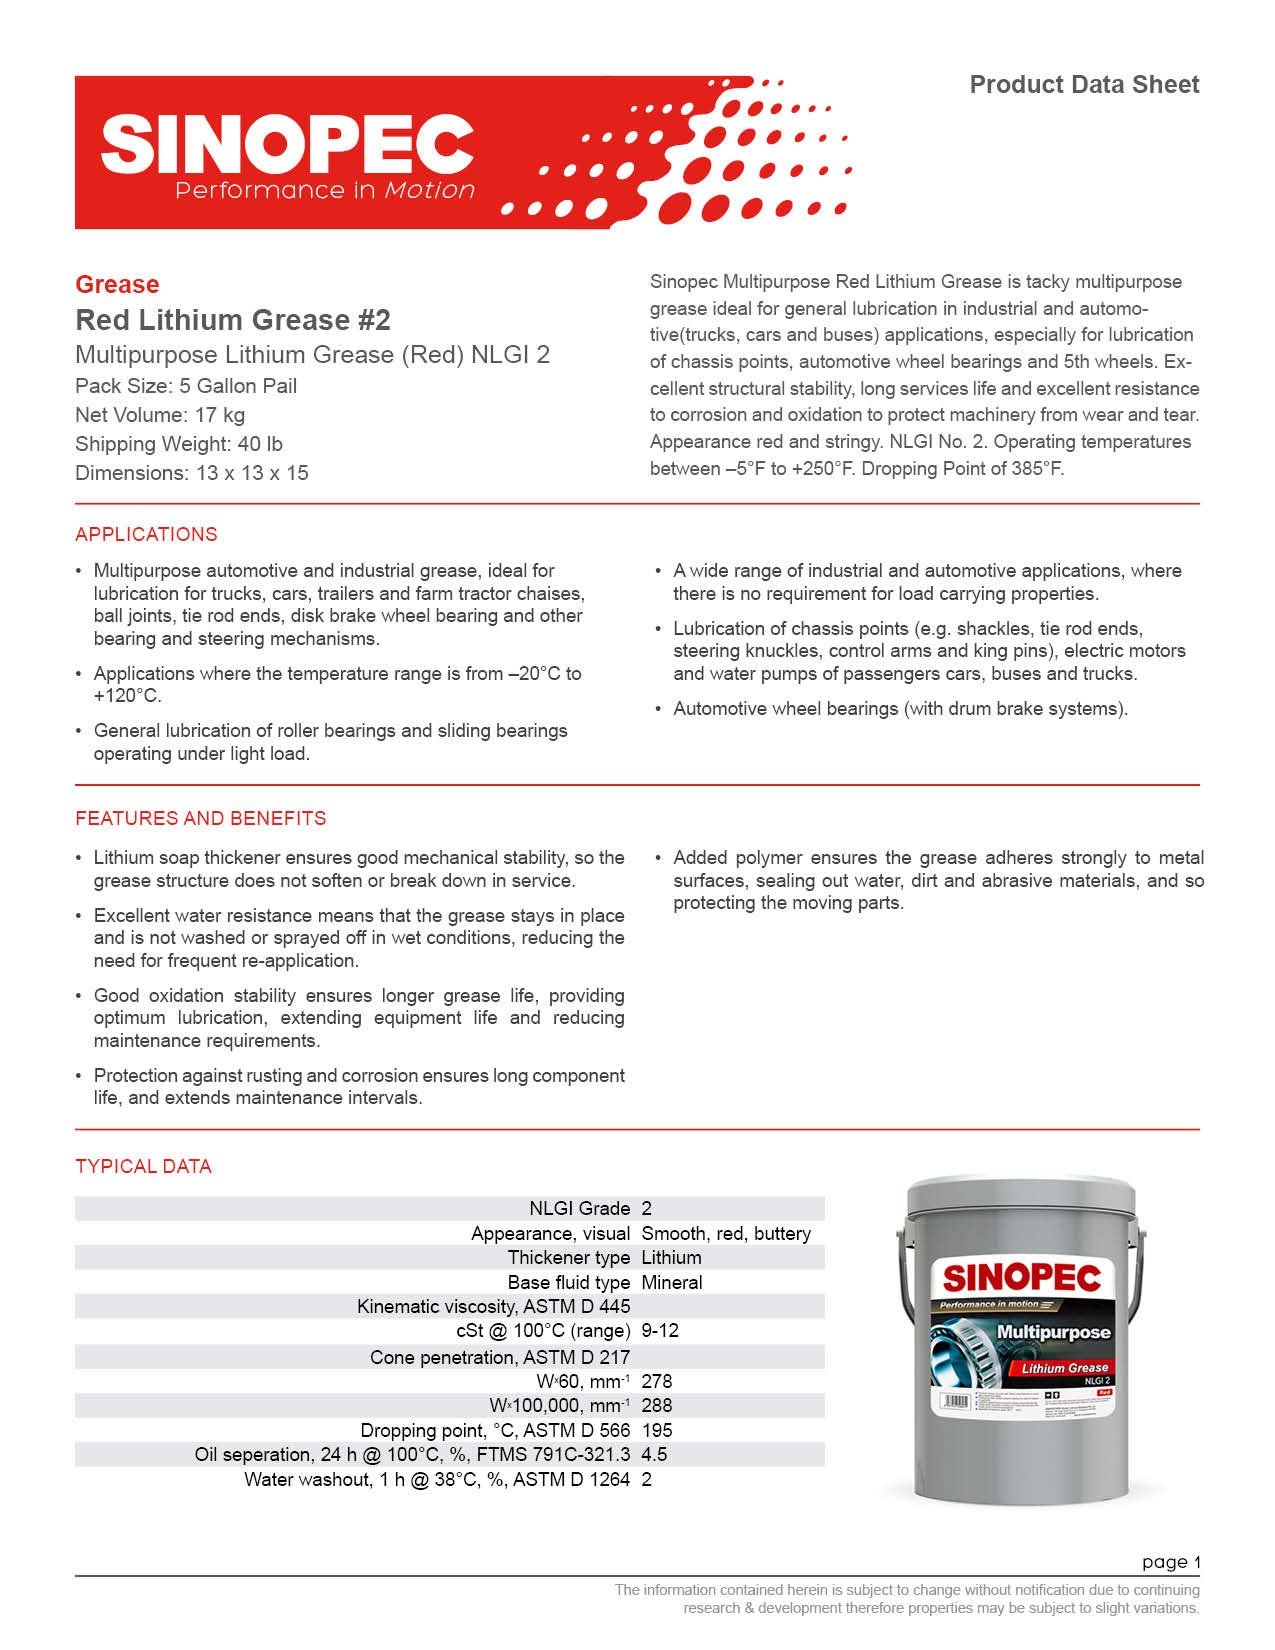 Sinopec Red Multipurpose Lithium Grease #2-35LB. (5 Gallon) Pail (12) by Sinopec (Image #3)